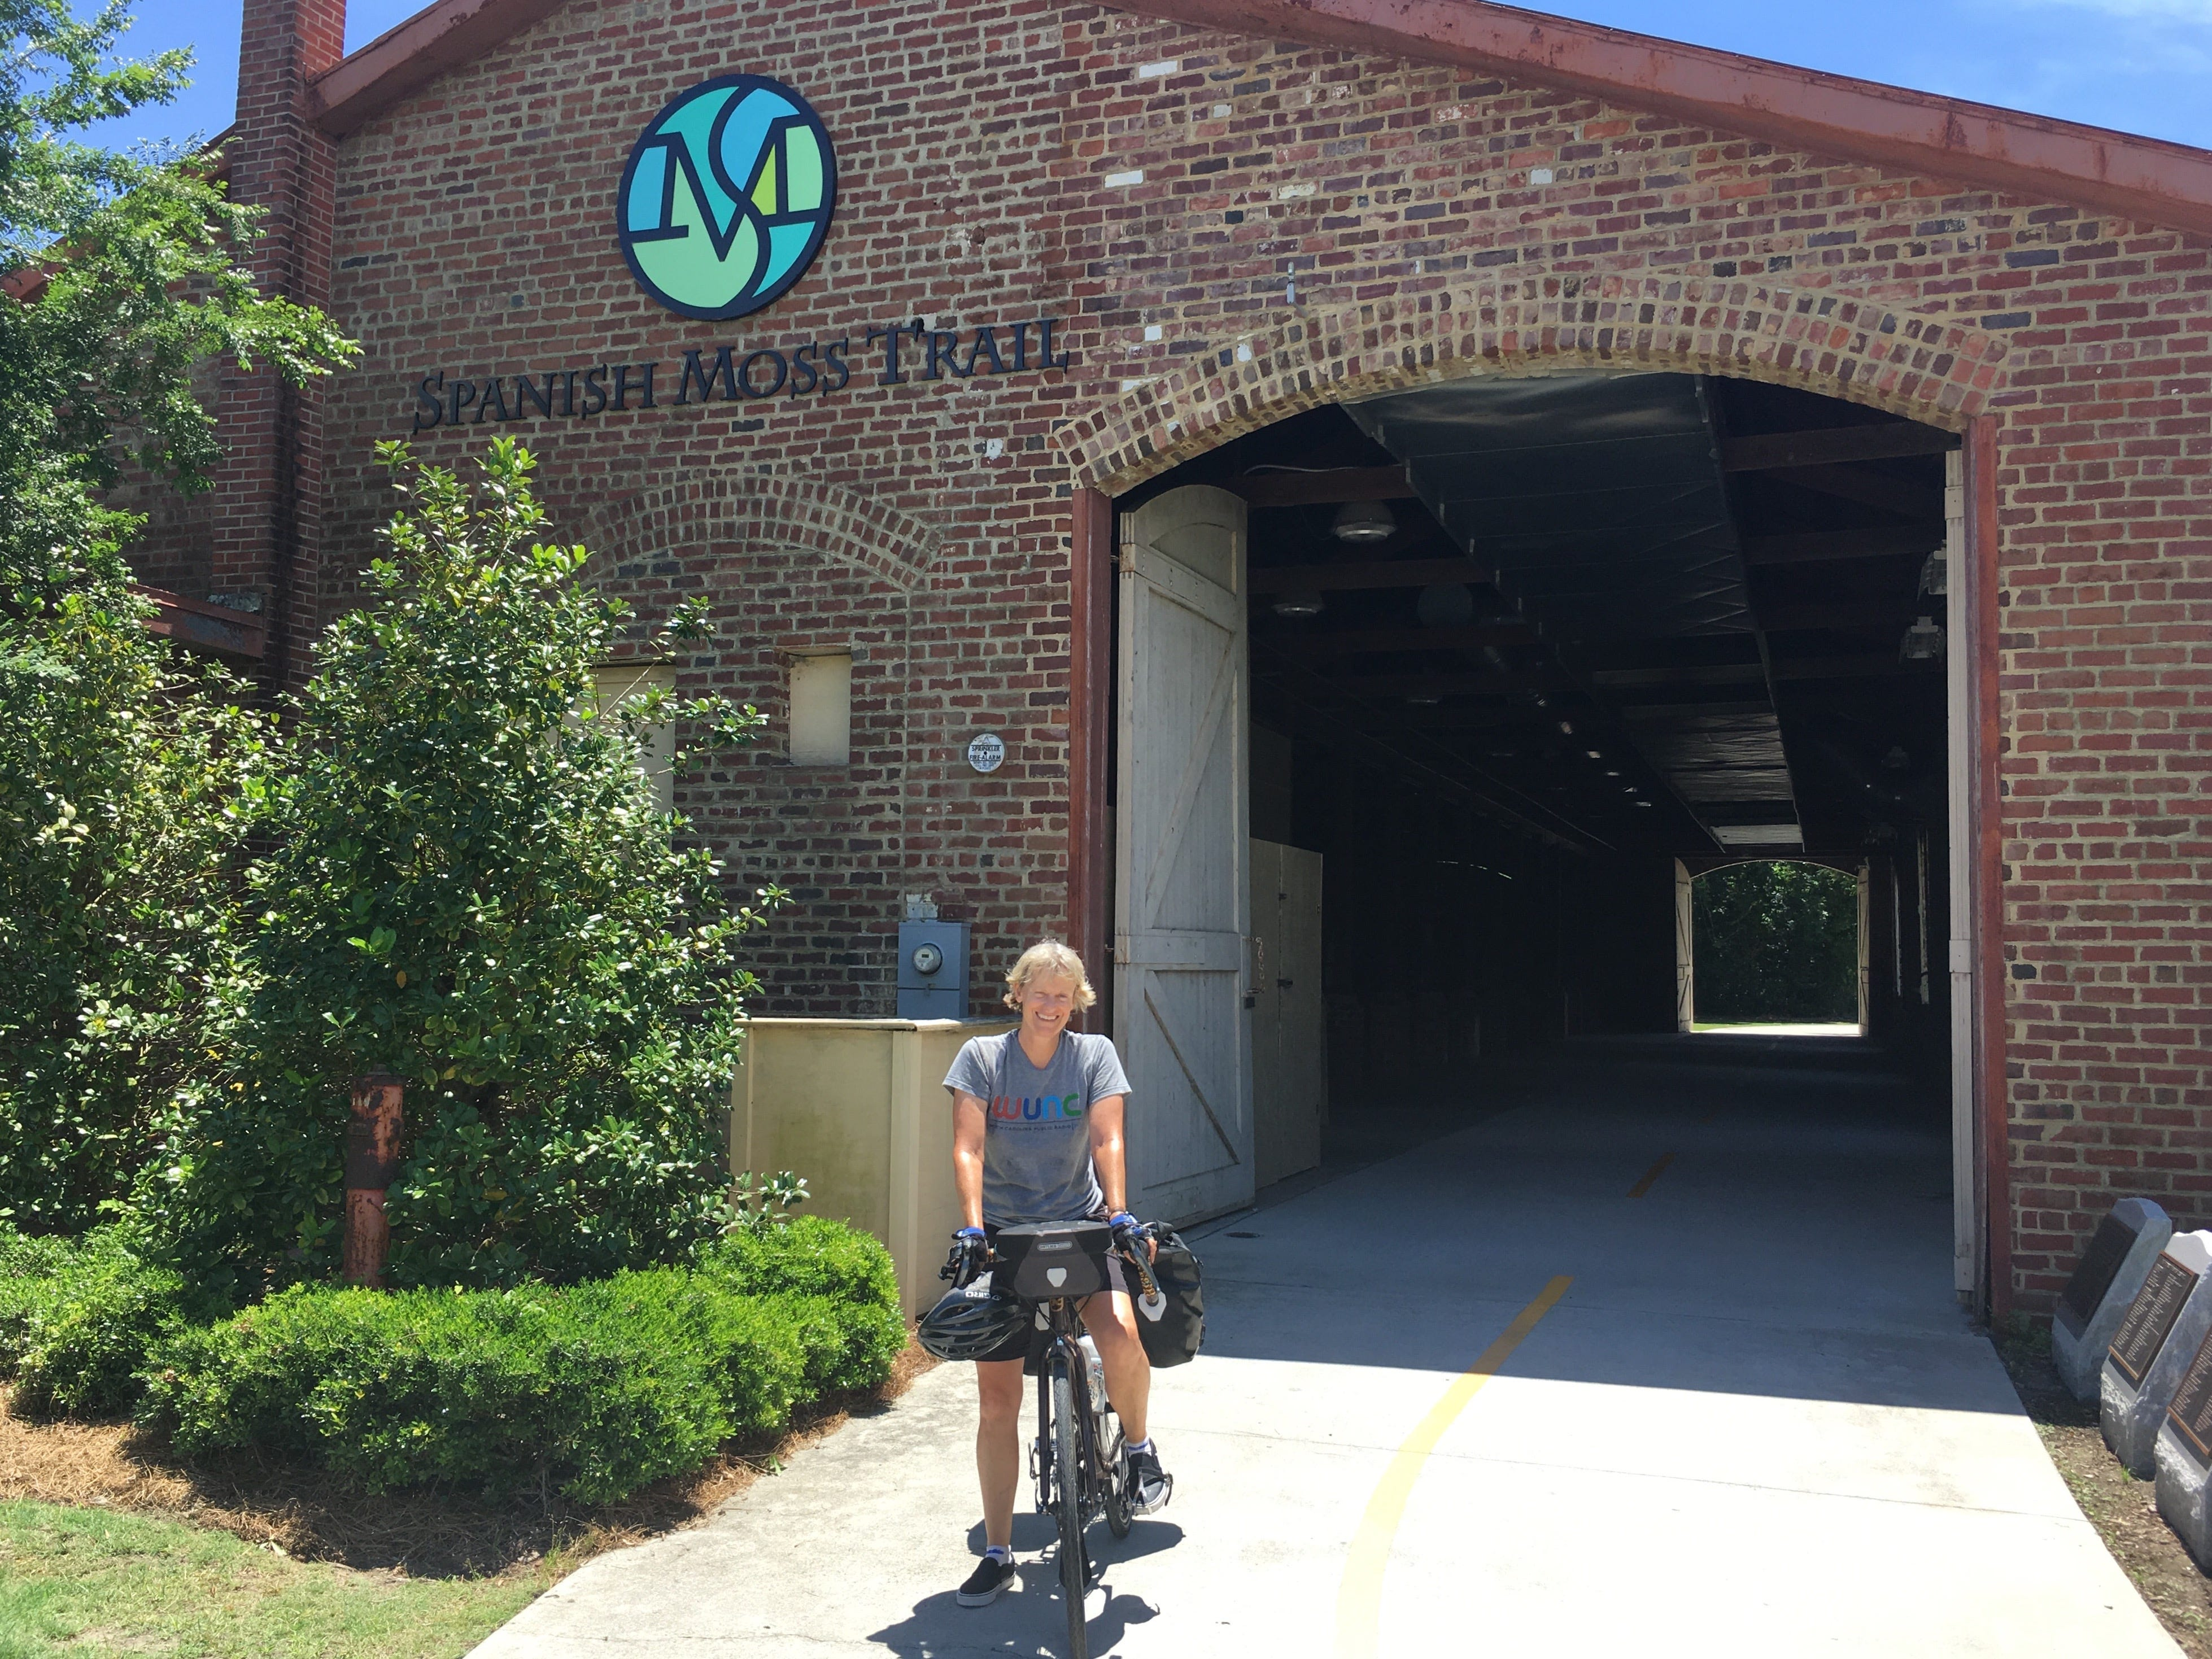 The Spanish Moss Trail in South Carolina is perfect for a family ride. Bike through beautiful wetlands and past historic buildings, including straight through the middle of the old Beaufort Depot.